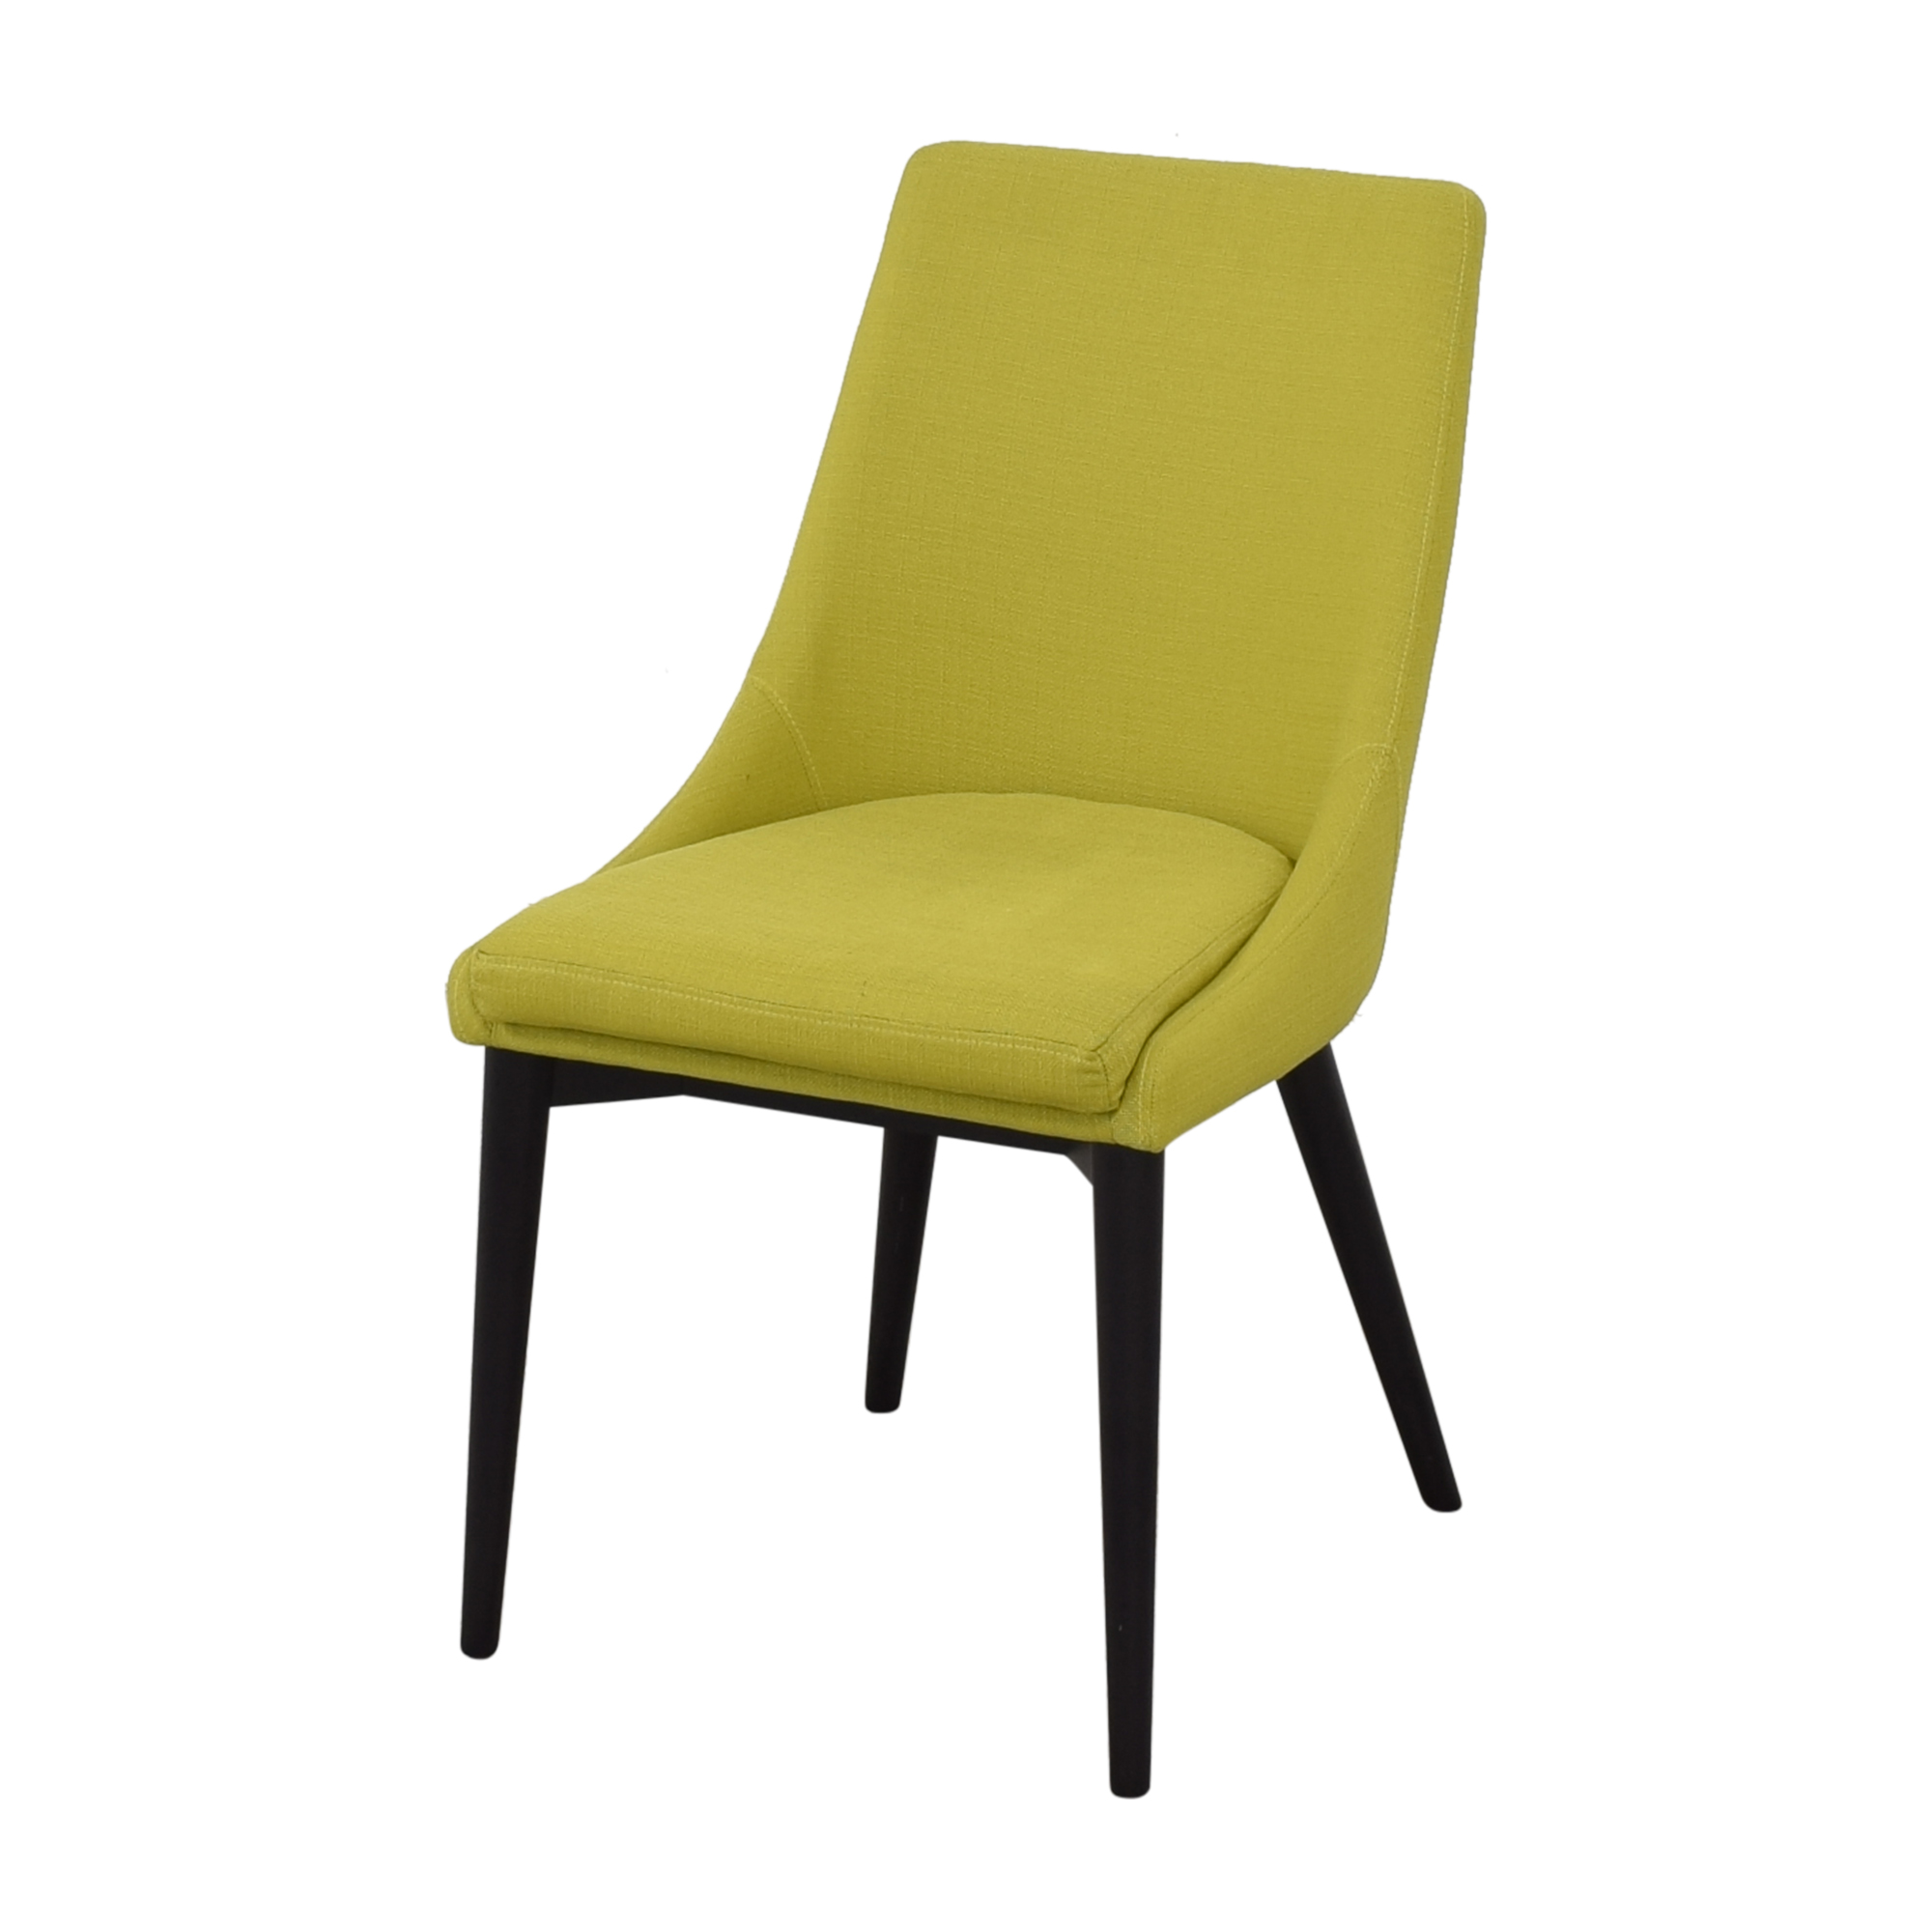 buy Modway Viscount Dining Chairs Modway Dining Chairs